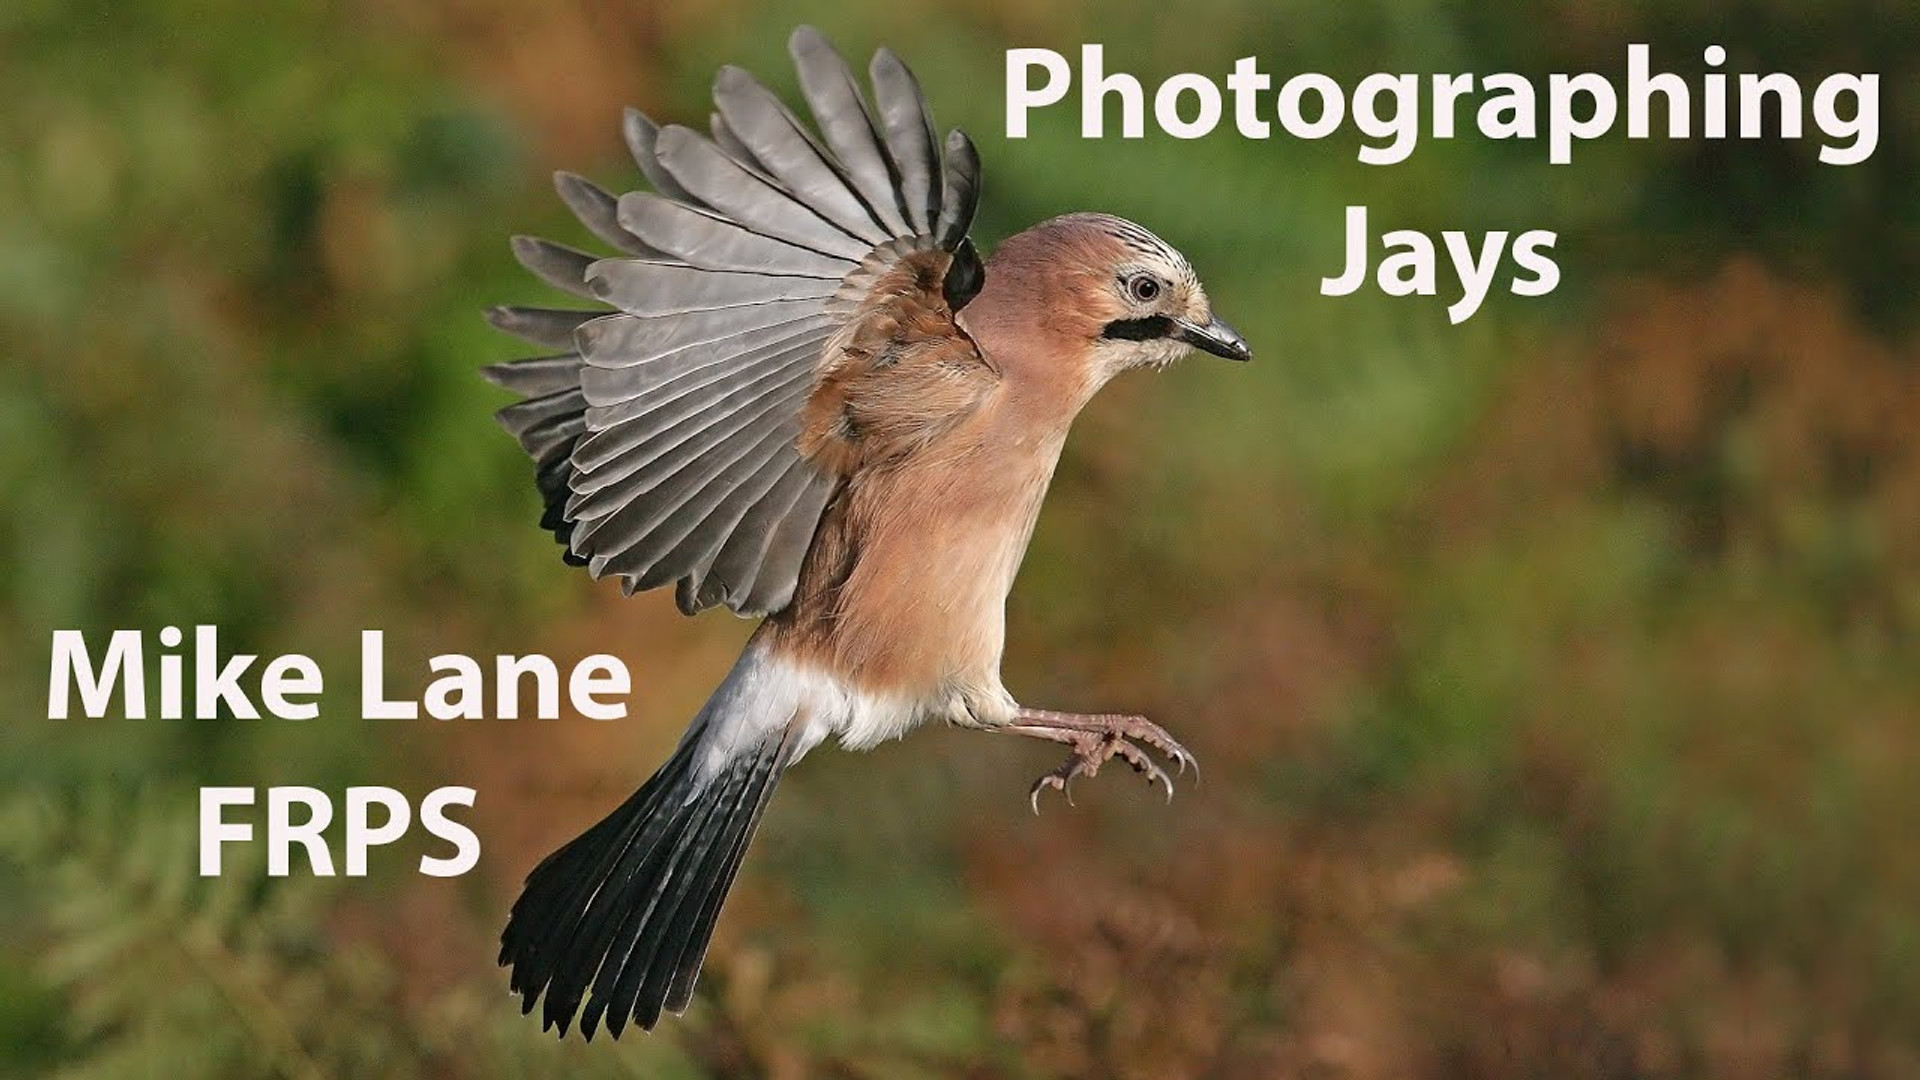 Photographing Jays